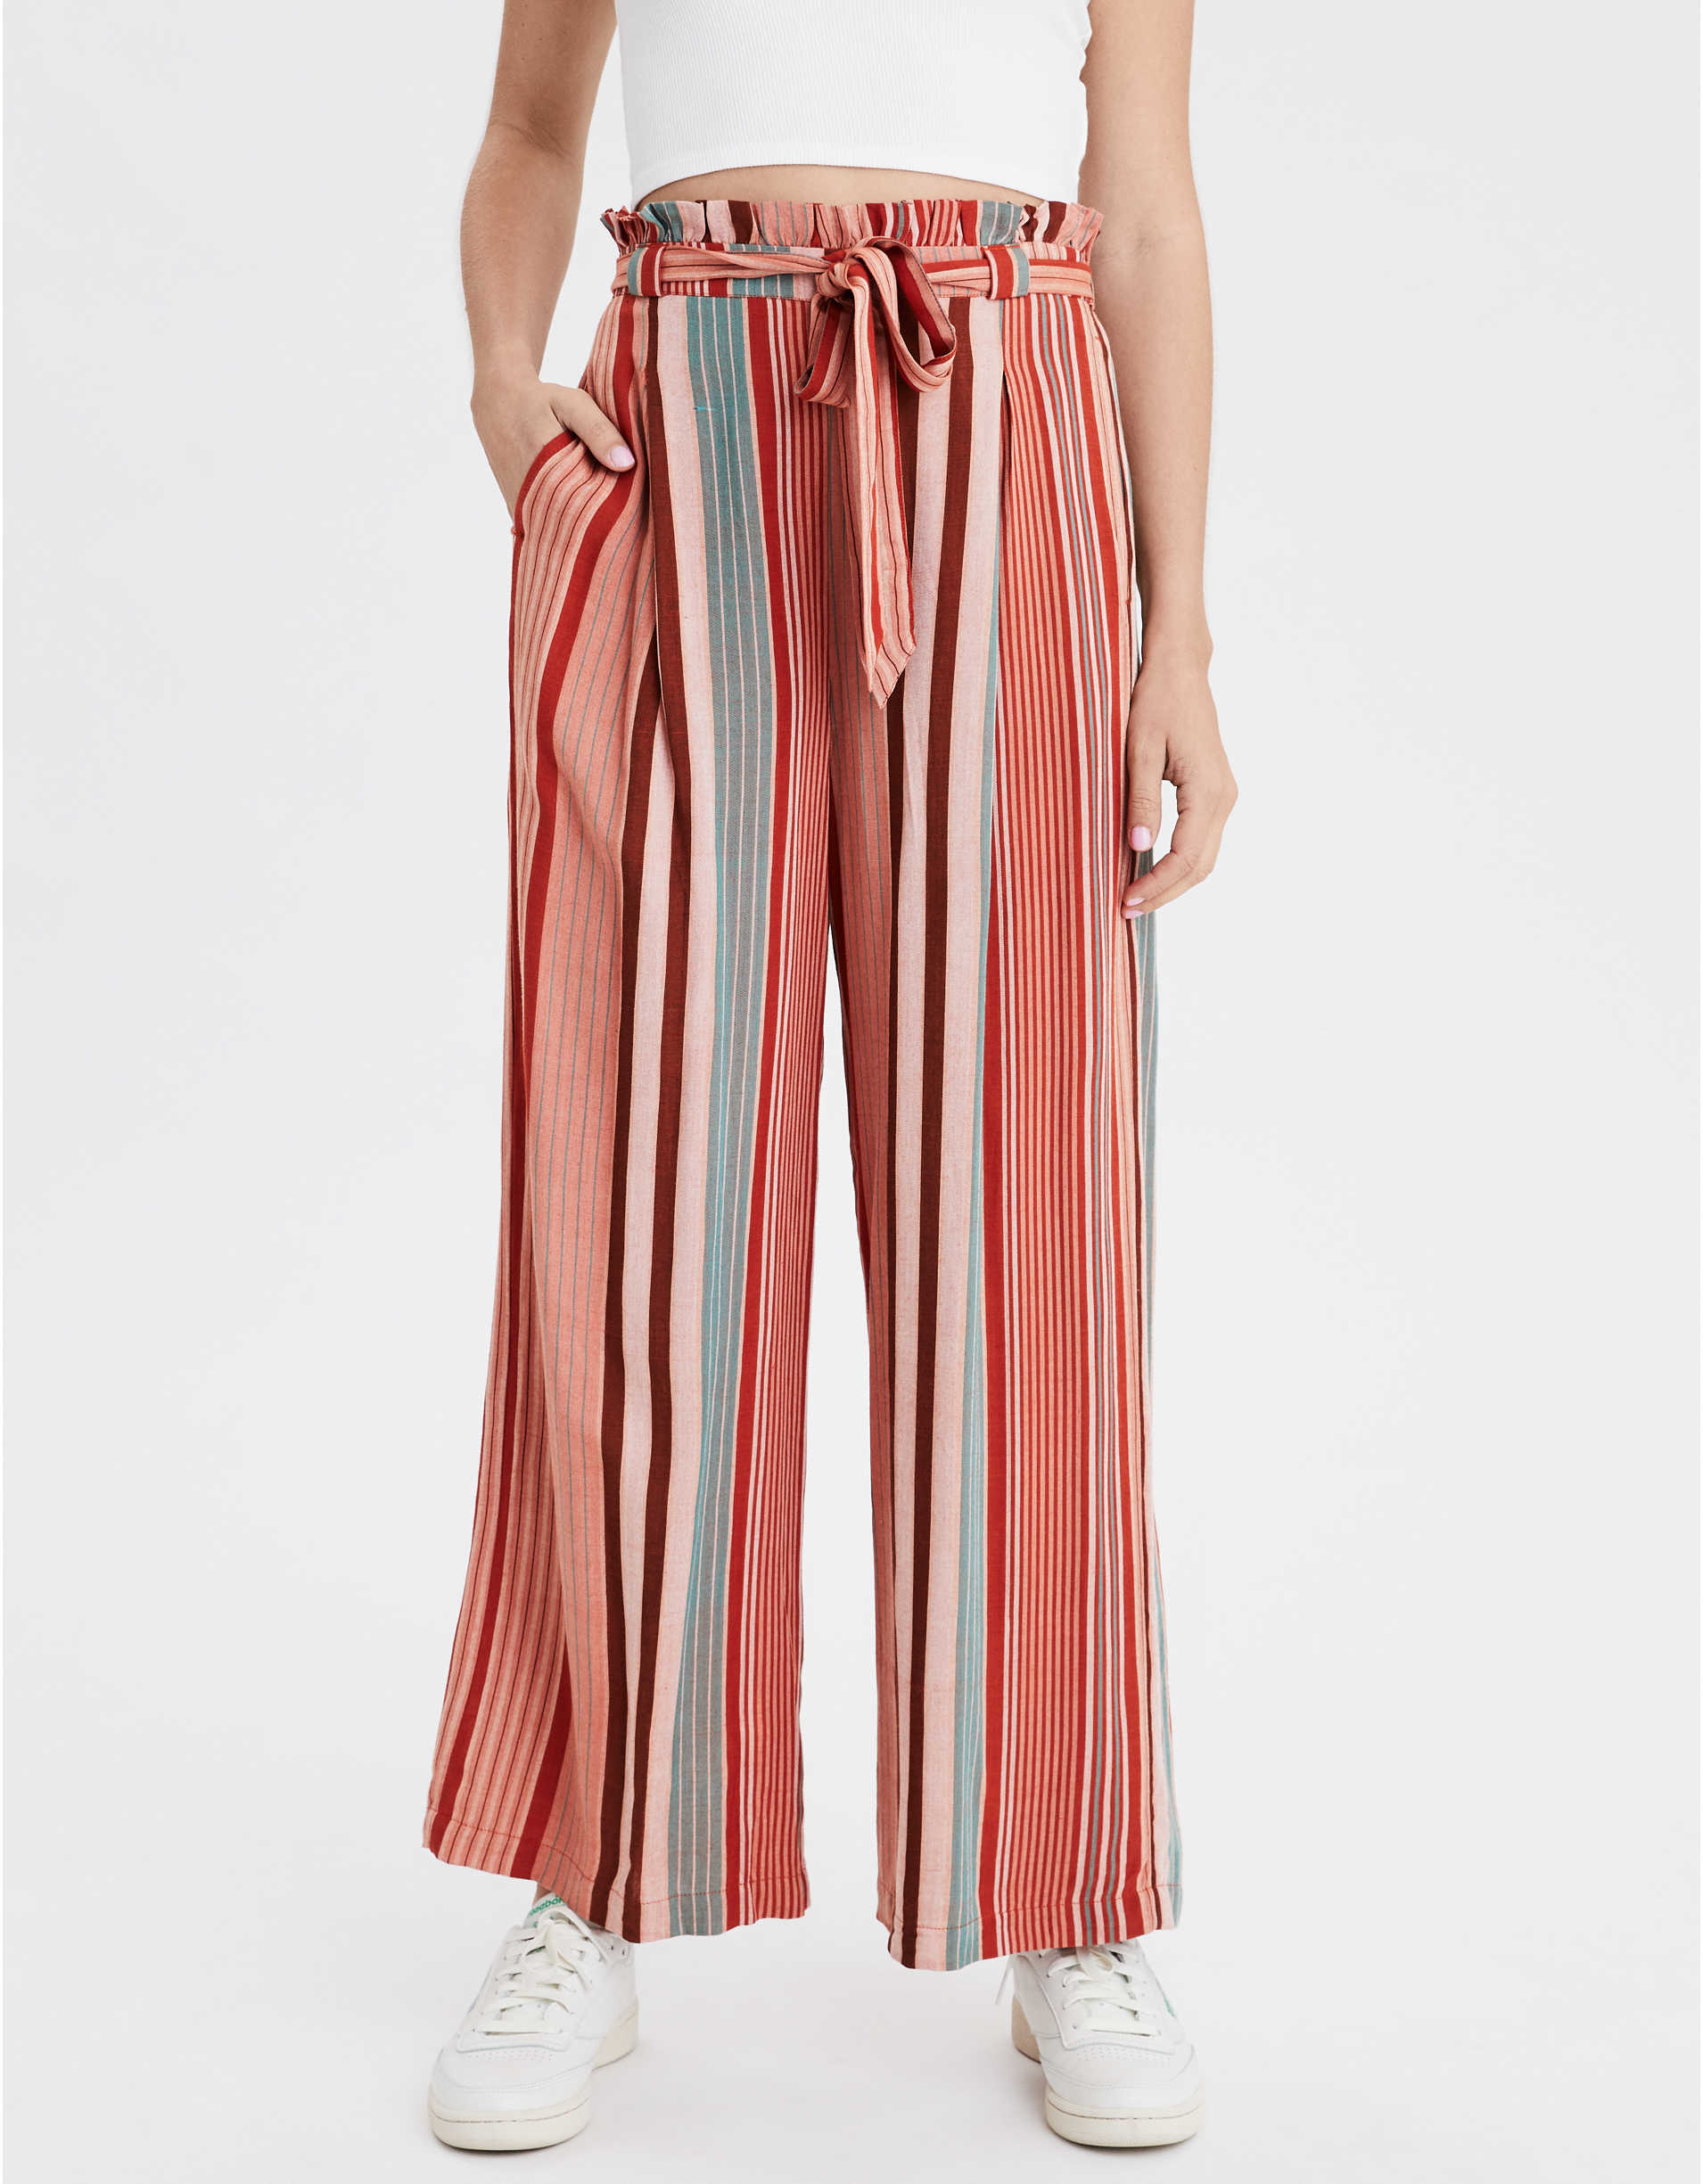 AE High-Waisted Tie Front Paperbag Pant